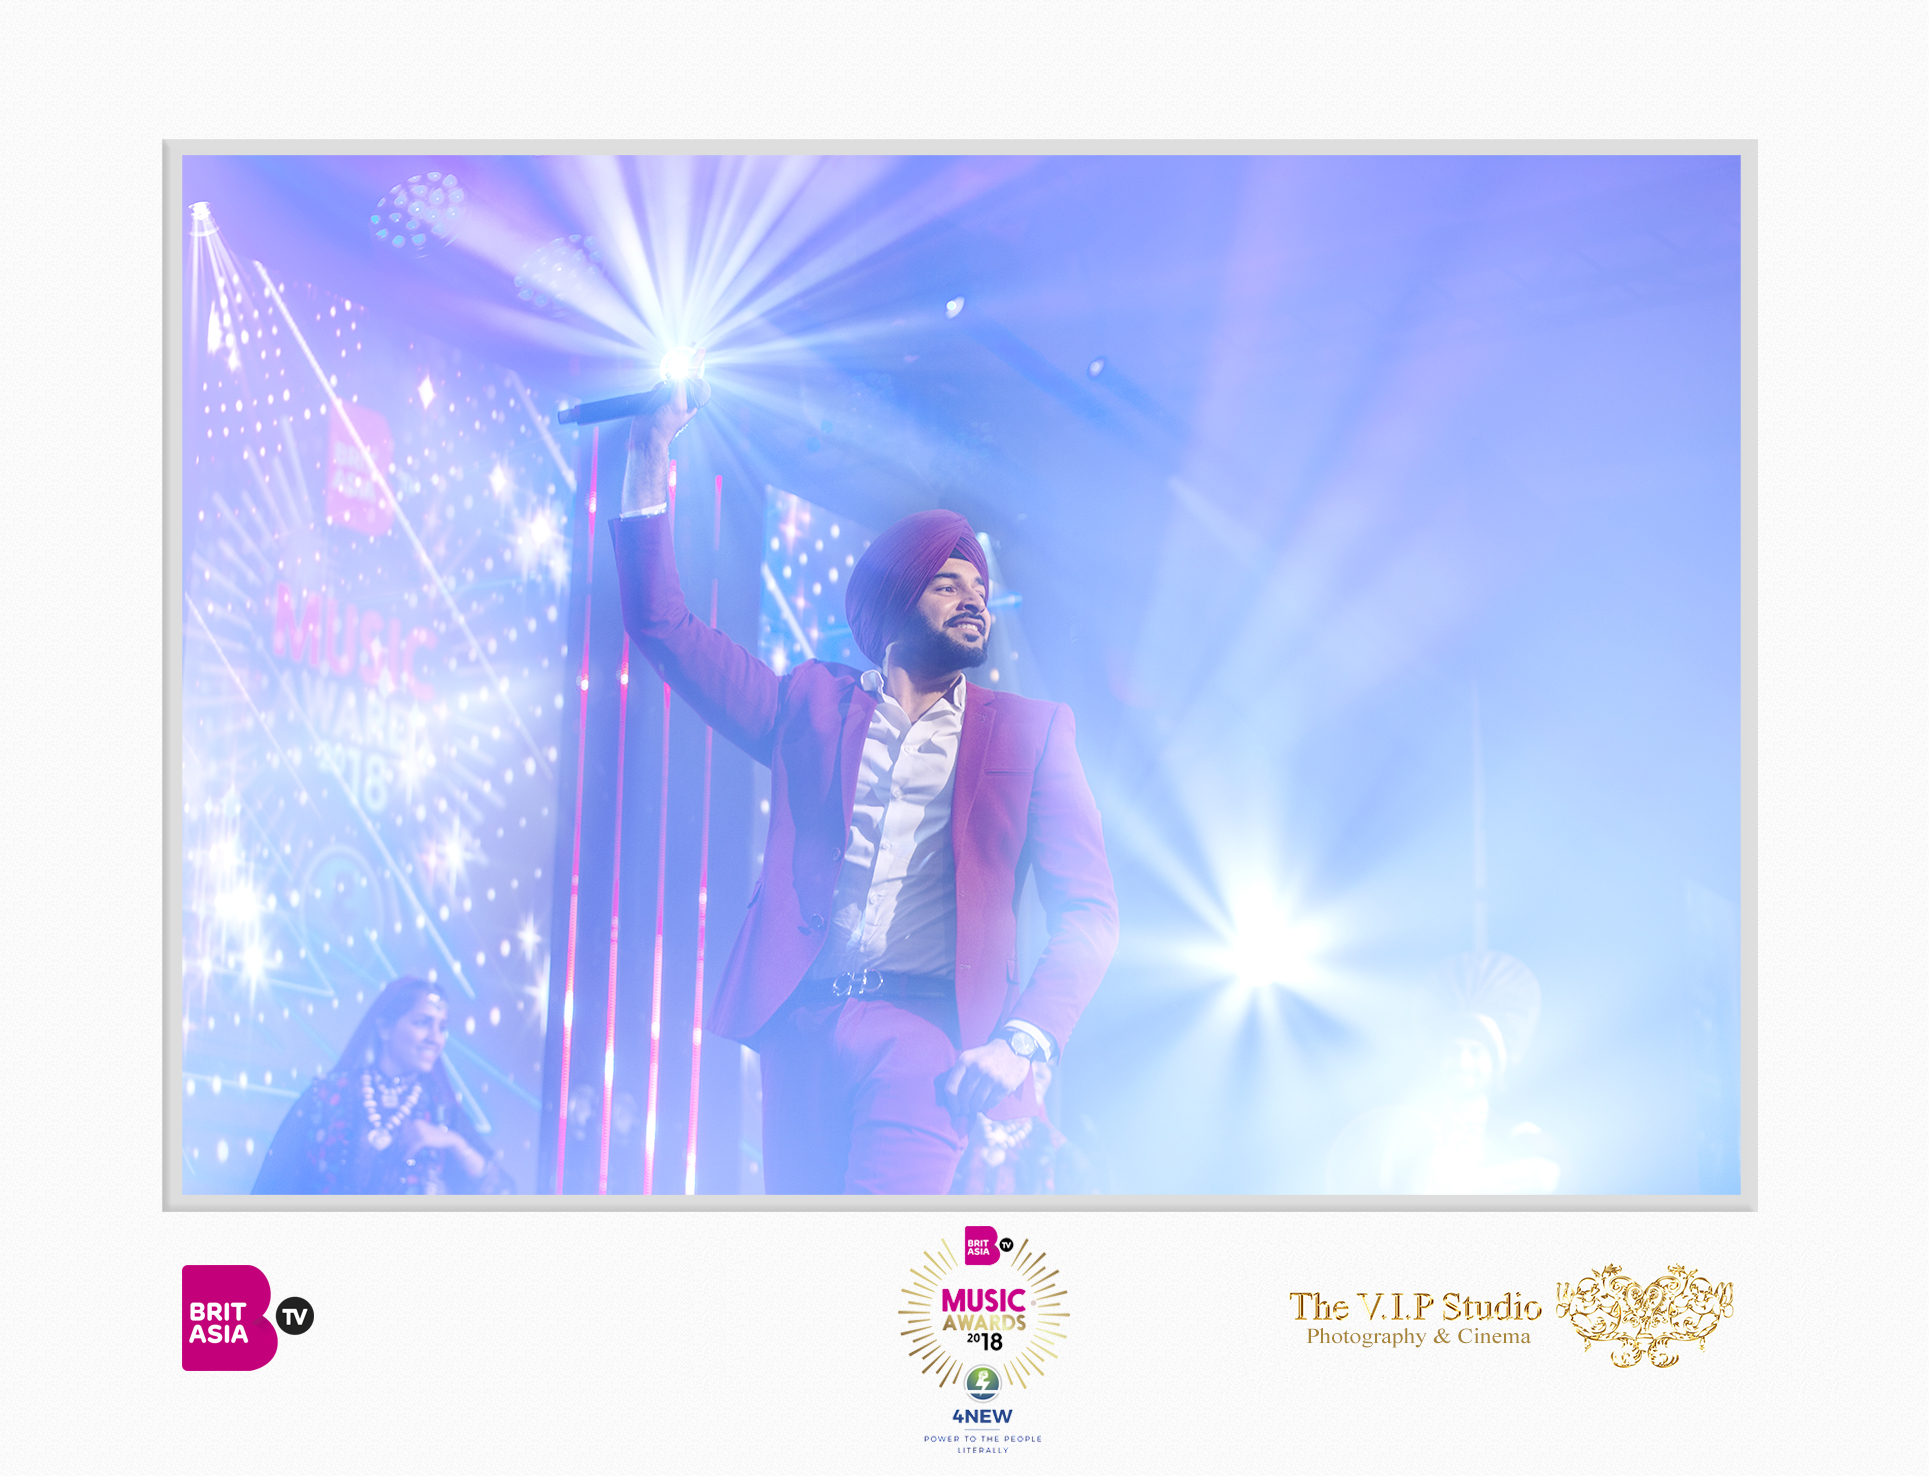 The VIP Studio - BritAsia Music Awards - G Sidhu